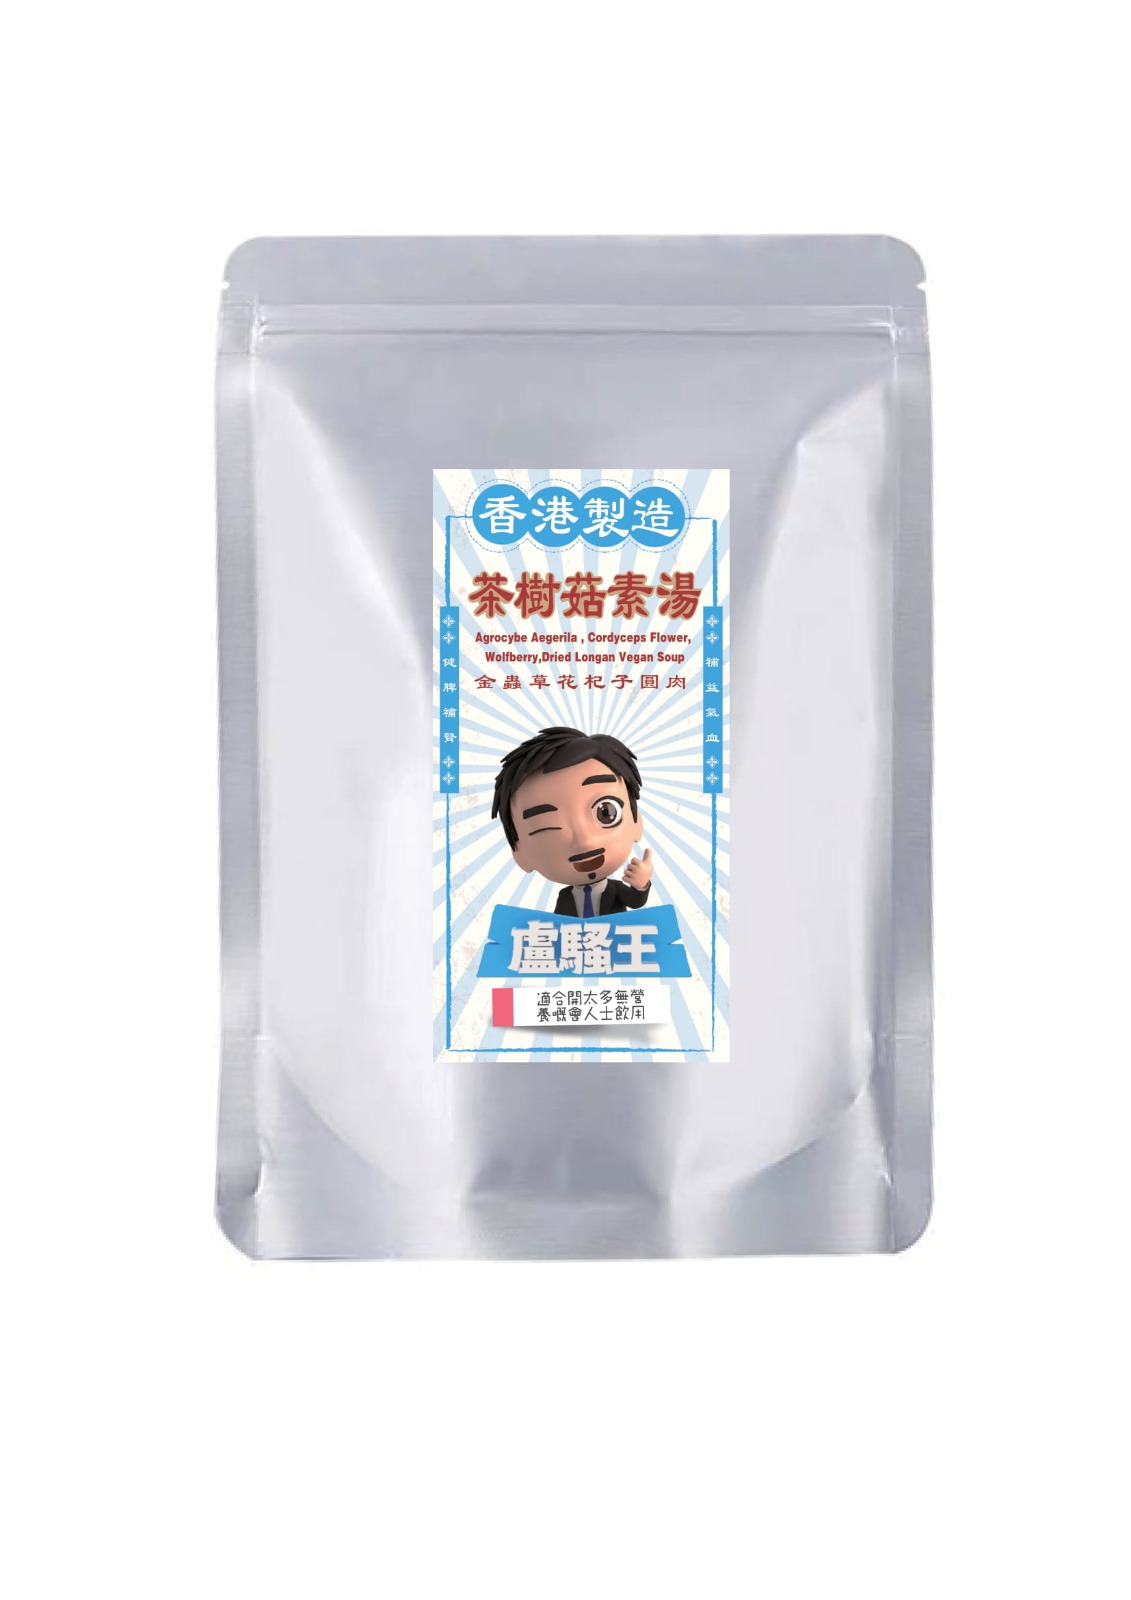 Losooking Series: Agrocybe Aegerila, Cordyceps Flower, Wolfberry, Dried Longan Vegan Soup (New Product)